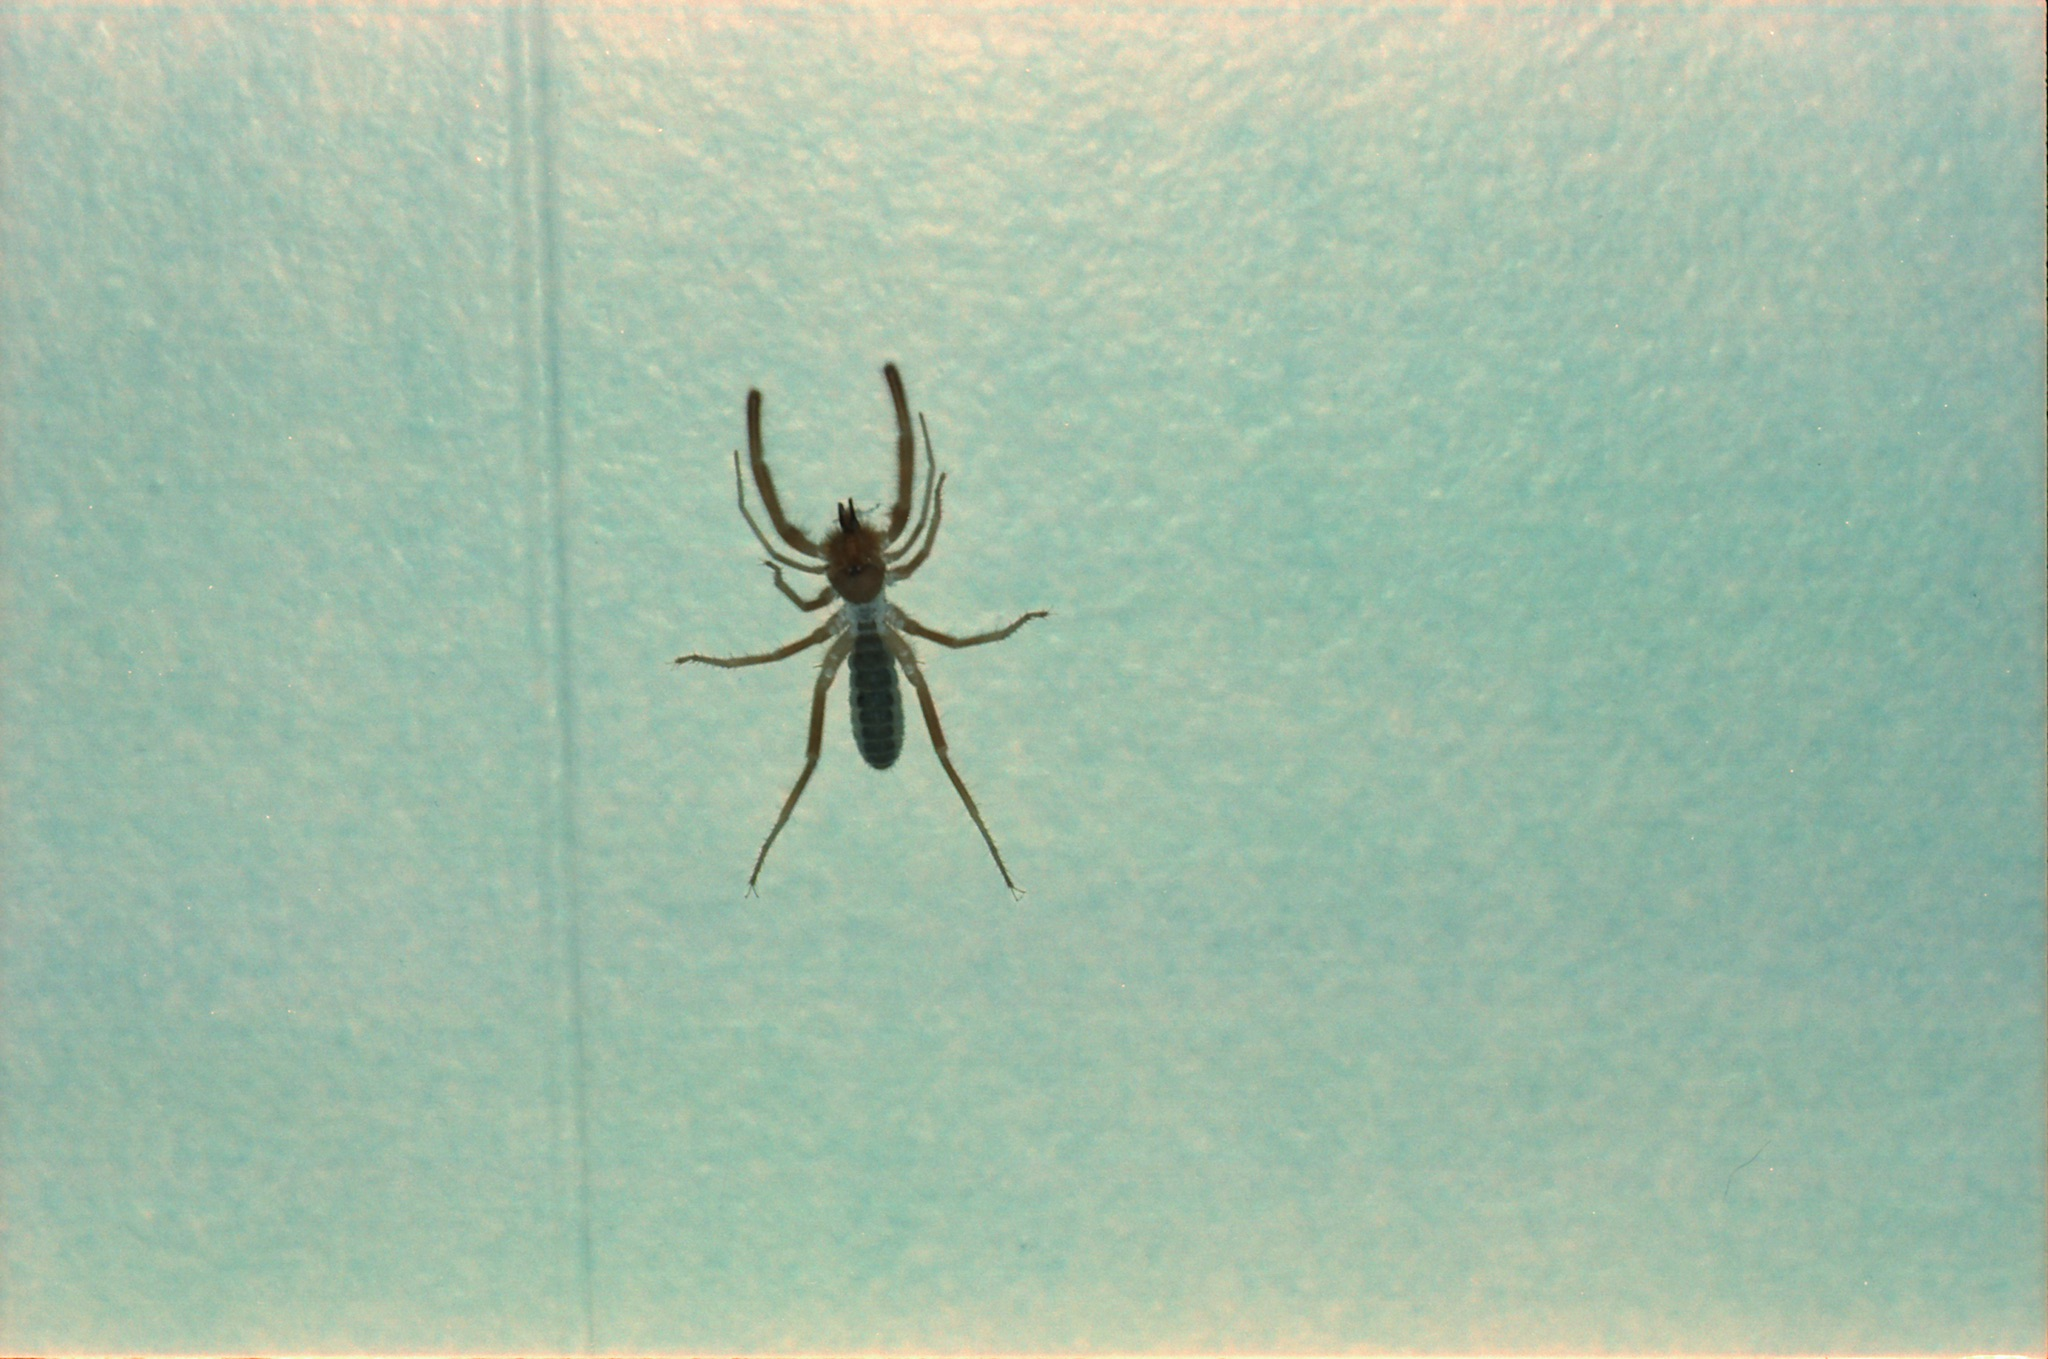 This was just chilling on the living room wall.